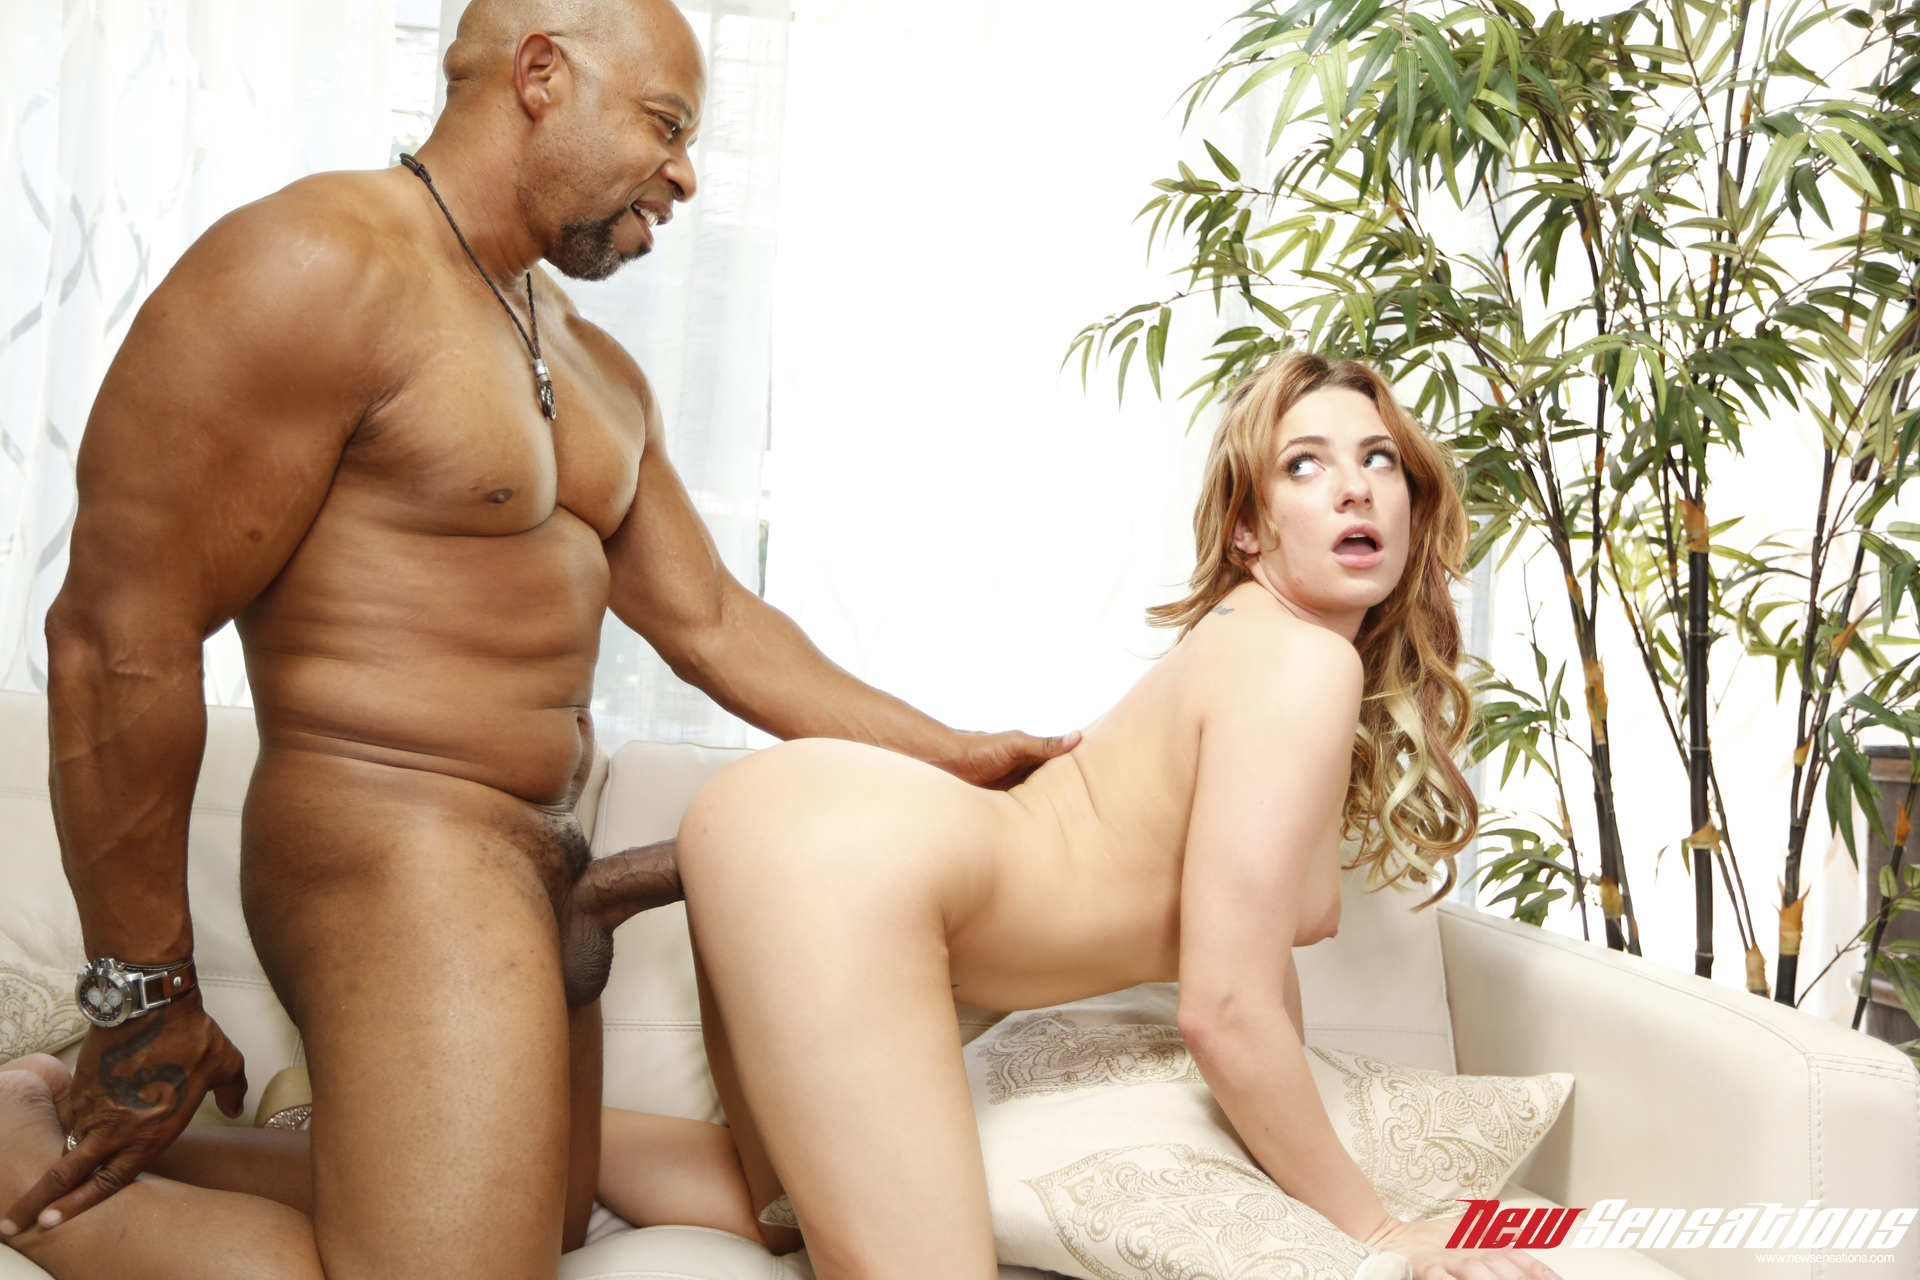 Preview Shane Diesel - Dahlia Sky - My Hotwife's First Interracial